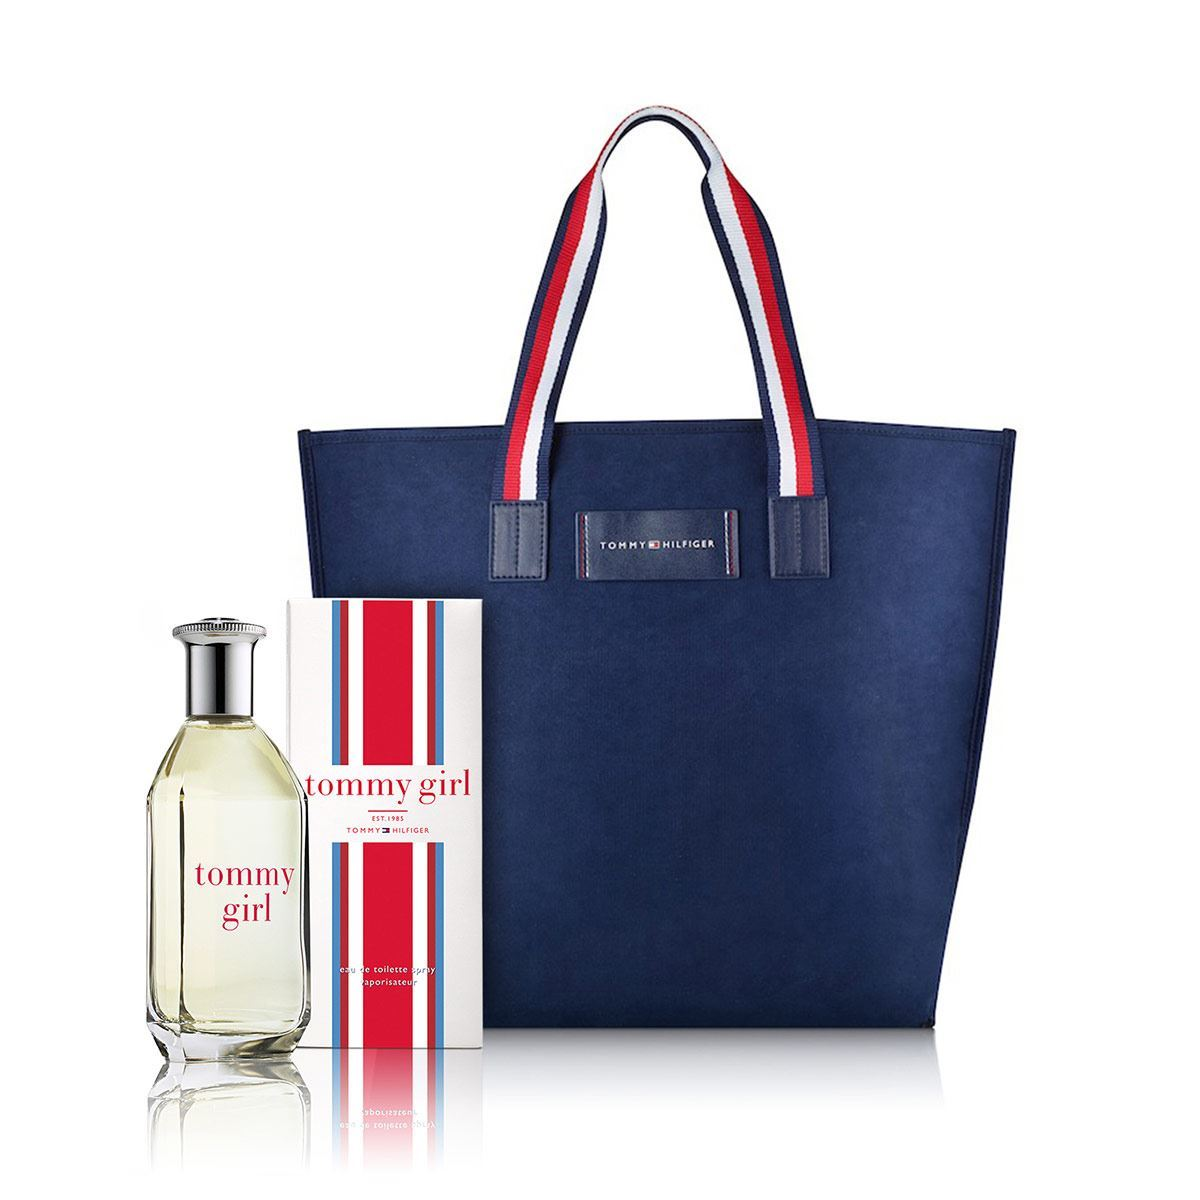 Set de Fragancia Tommy Girl para Mujer 100 ml + maleta